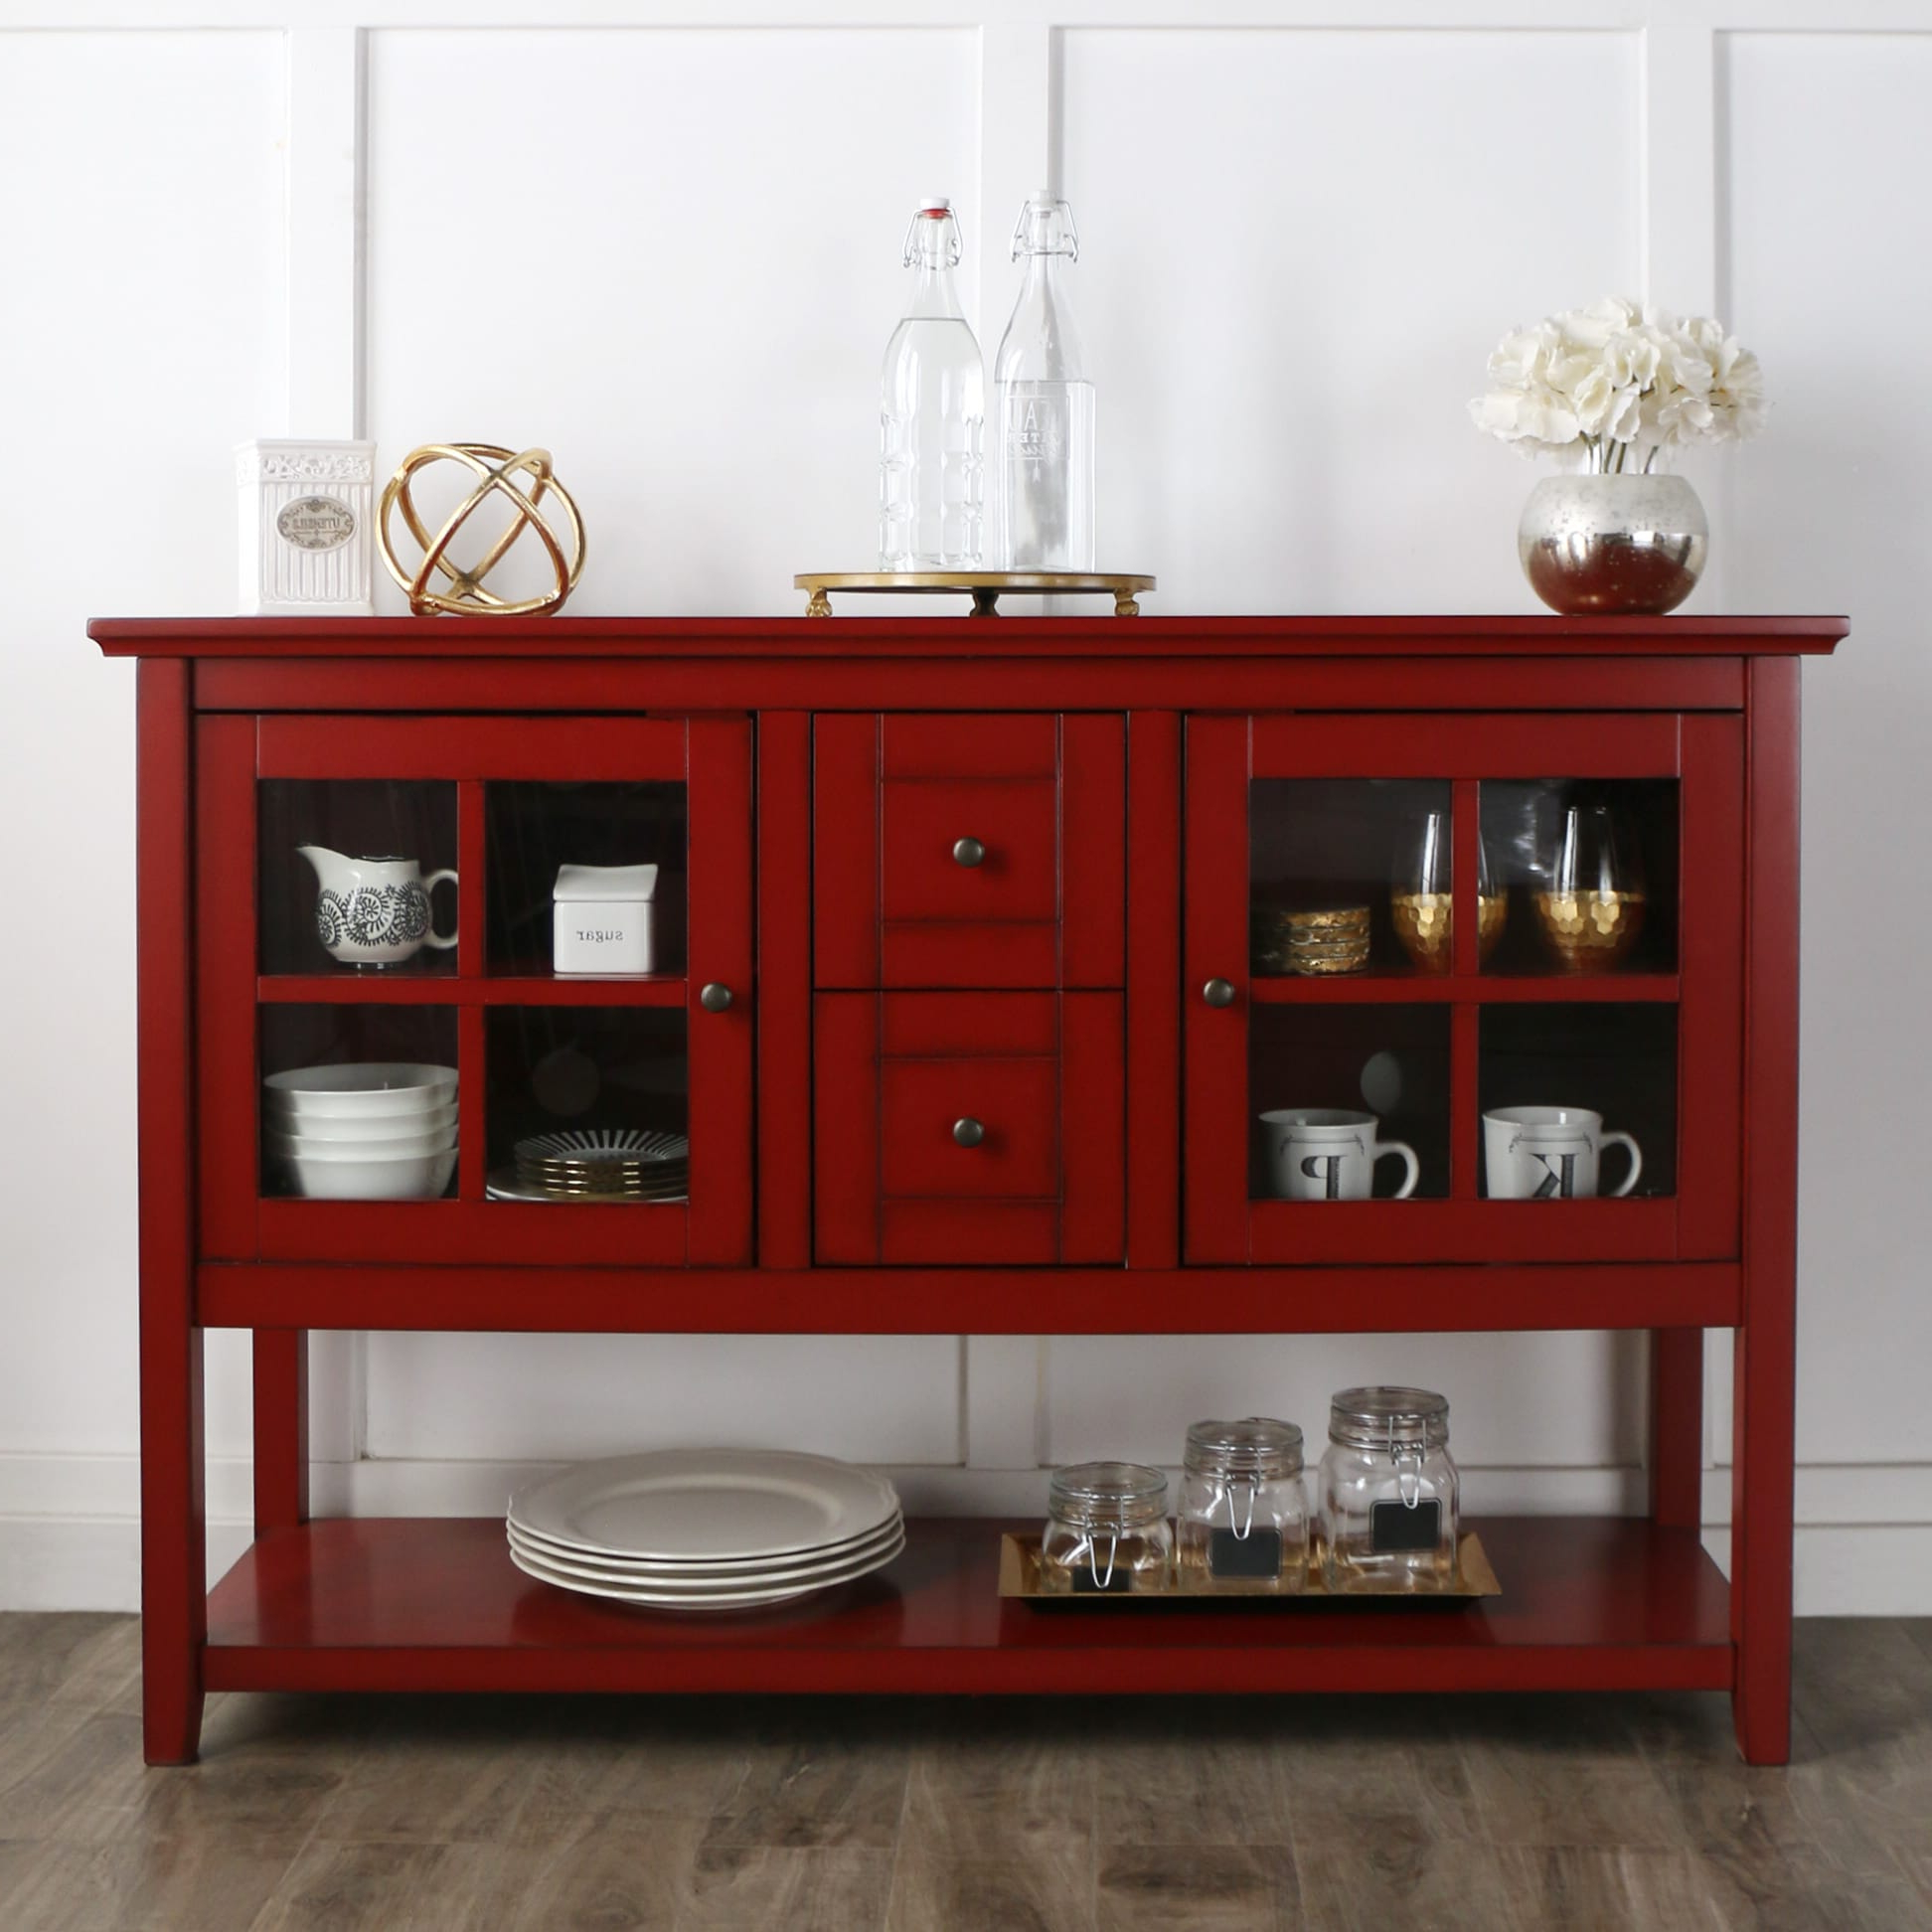 """Well Known Slattery 52"""" Wide 2 Drawer Buffet Tables Regarding Buffet 52 Inch Tv Console Table – Antique Redwalker Edison (View 18 of 20)"""